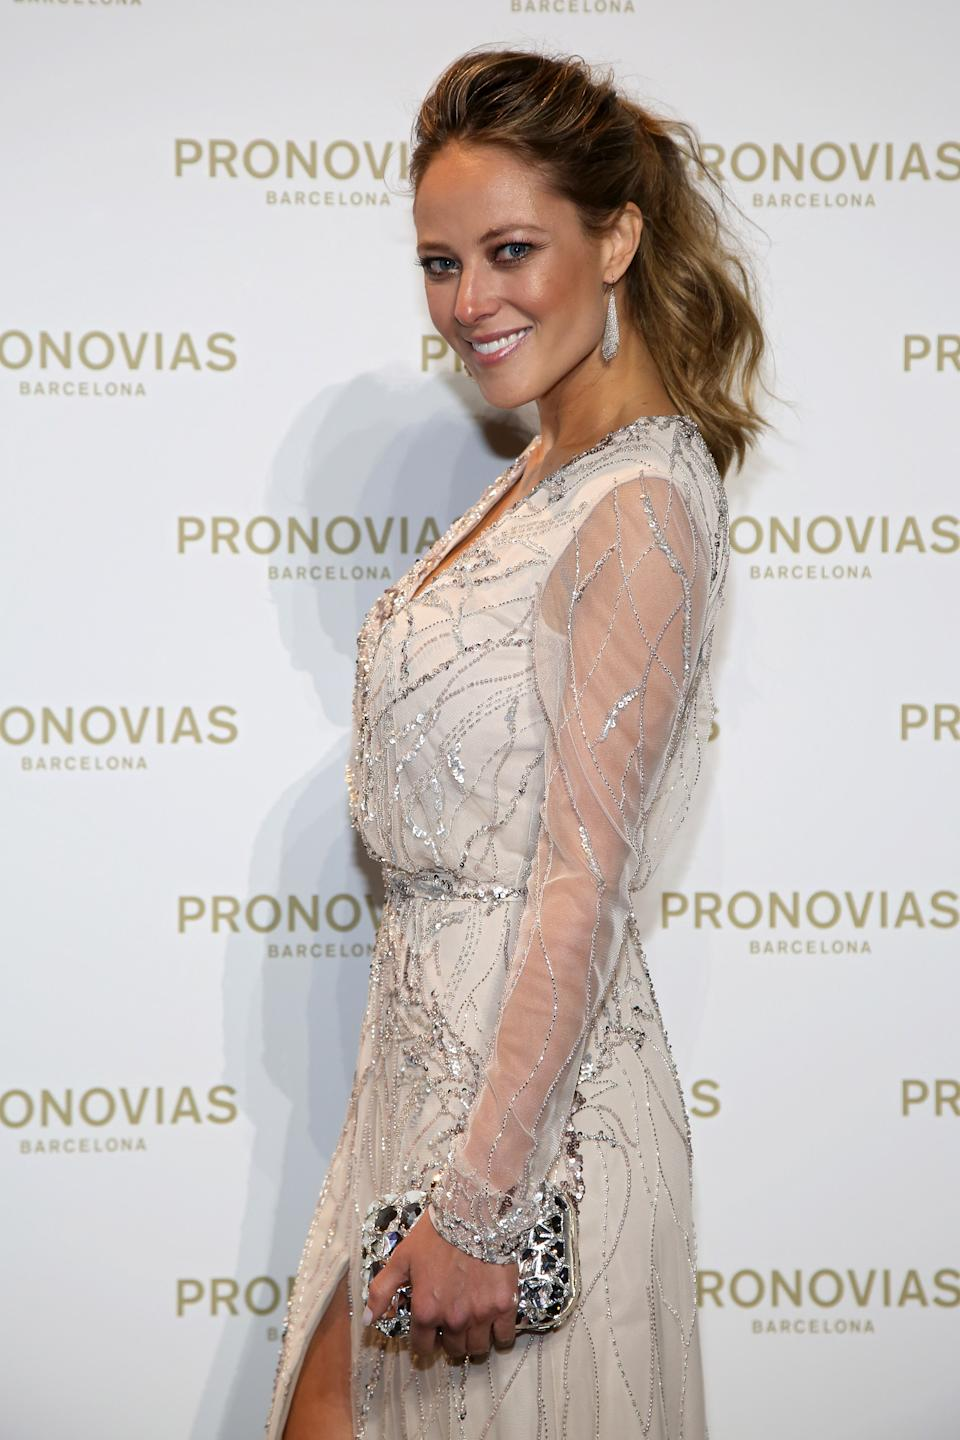 BARCELONA, SPAIN - APRIL 29:  Vanessa Huppenkothen poses during Pronovias bridal collection during the 'Barcelona Bridal Fashion Week 2016' at Italian Pavilion of Fira Barcelona on April 29, 2016 in Barcelona.  (Photo by Europa Press/Europa Press via Getty Images)